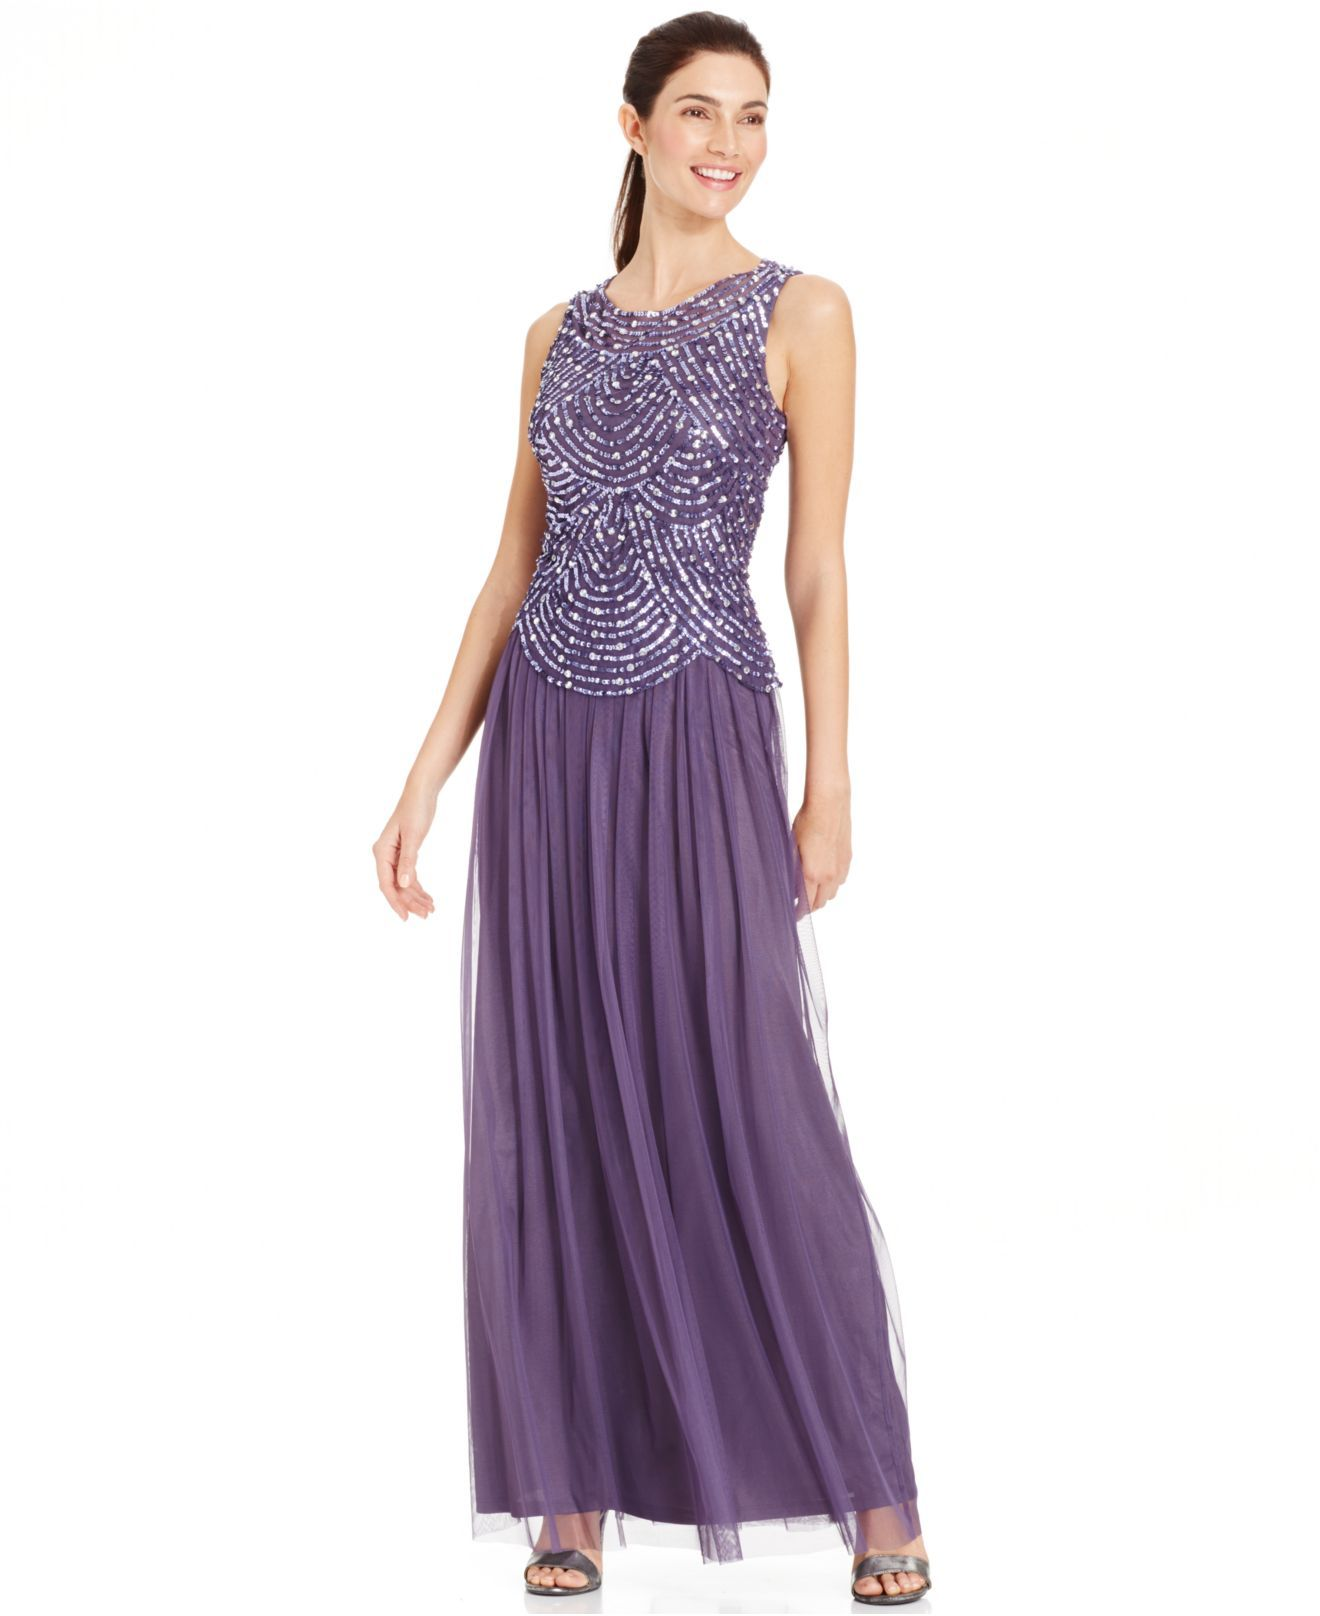 PATRA 2183 Purple Plus Size Embellished Popover Gown. Taille 46 ...